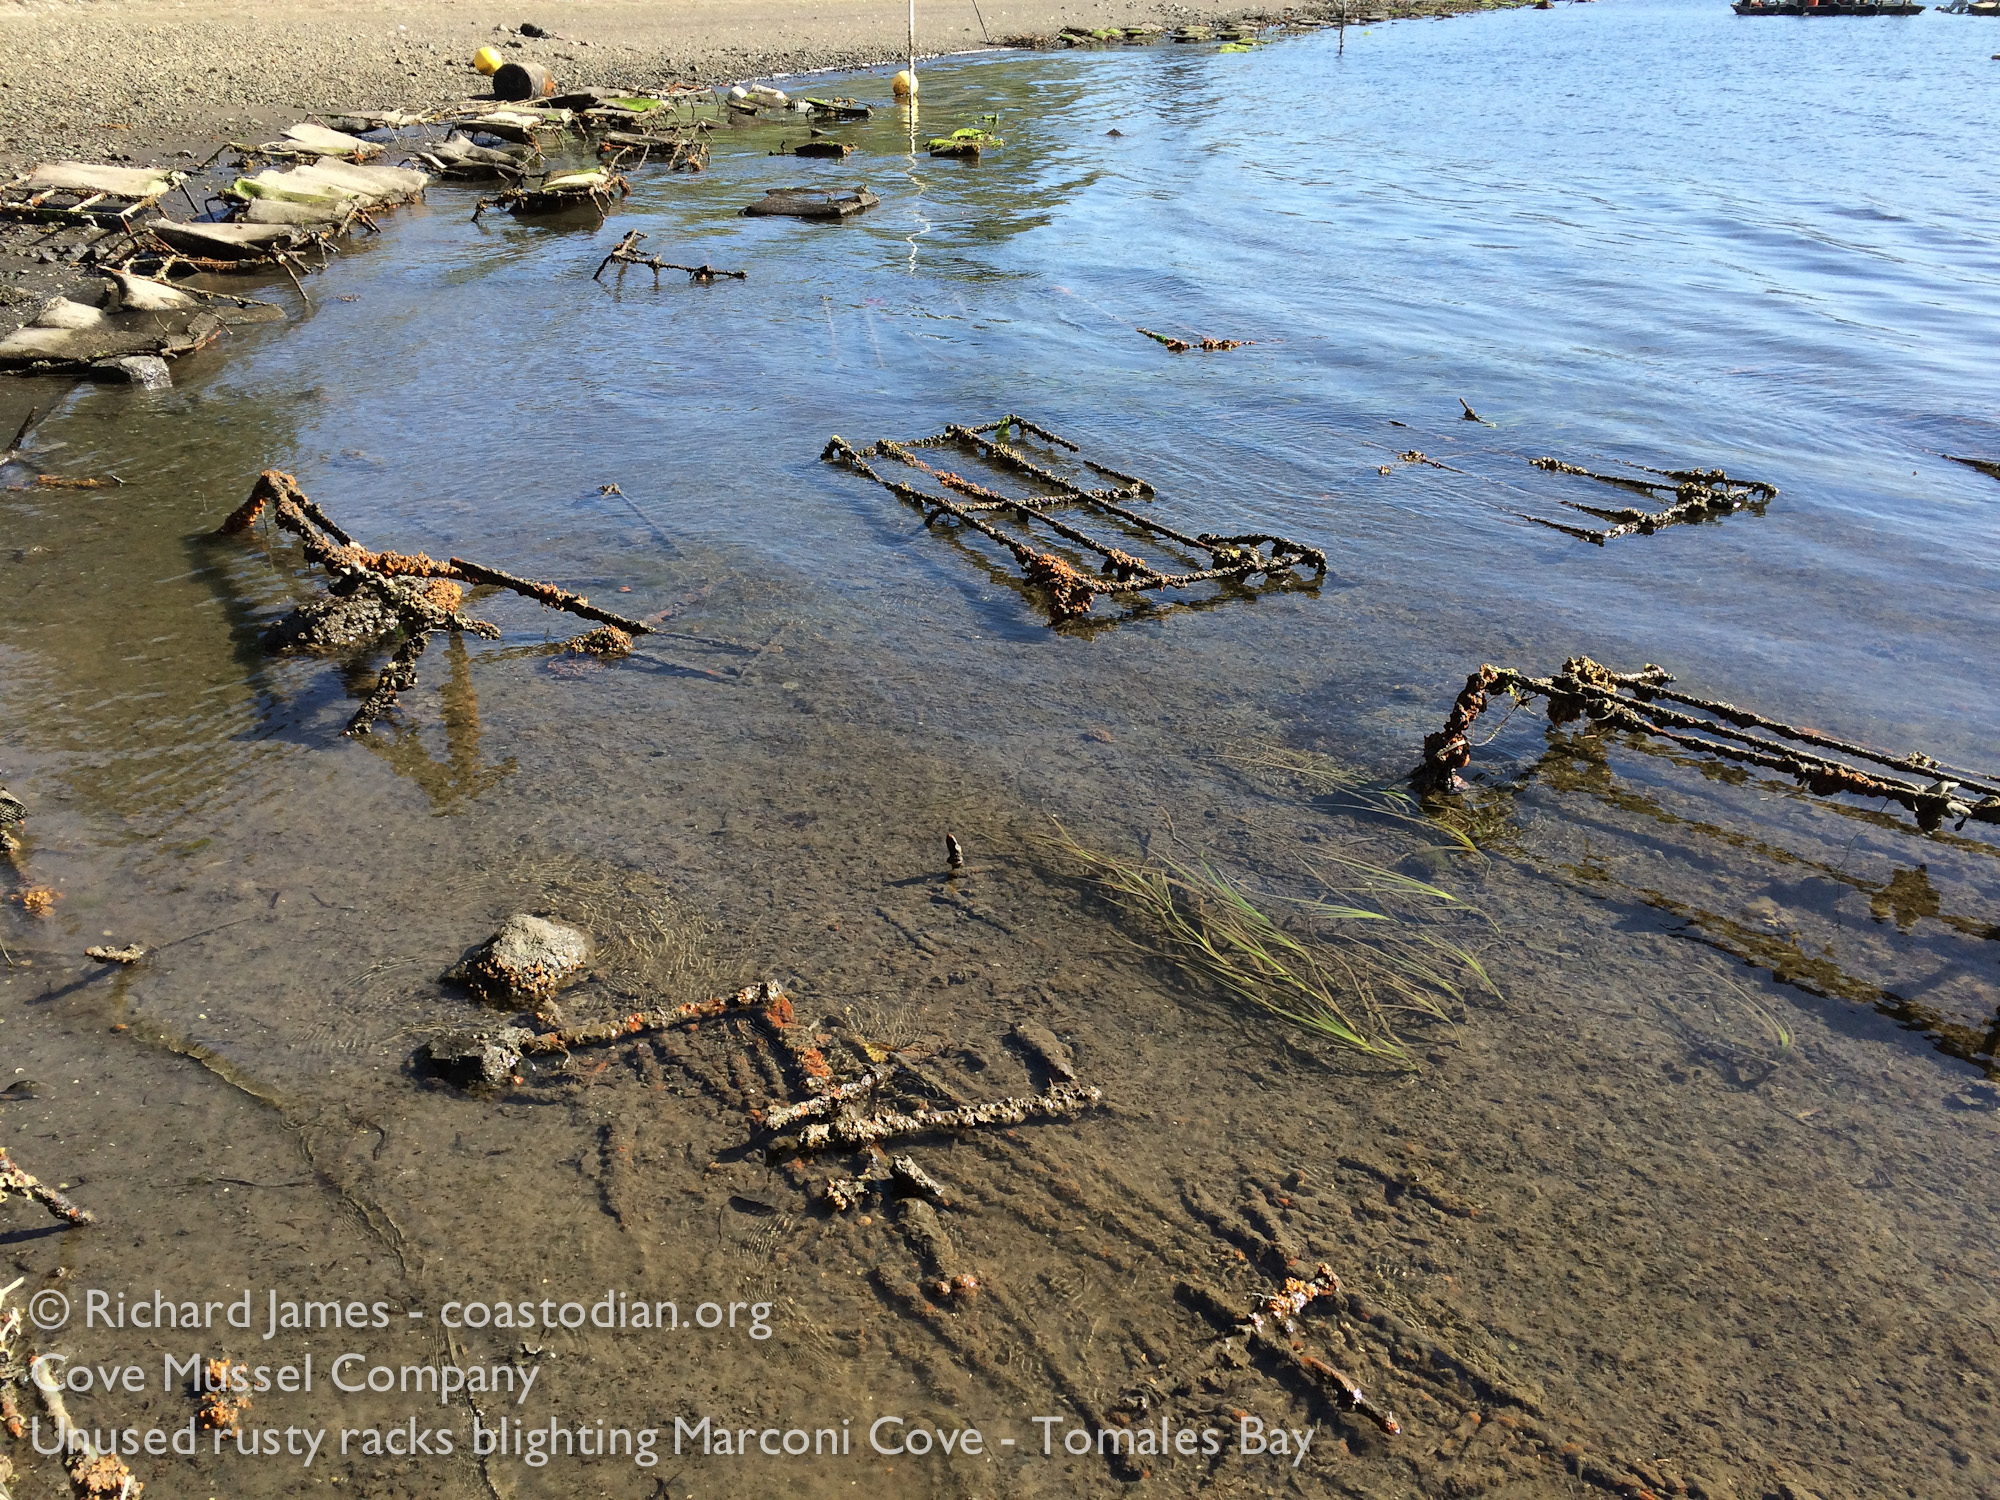 Unused iron racks, blighting Marconi Cove, Tomales Bay ©Richard James - coastodian.org